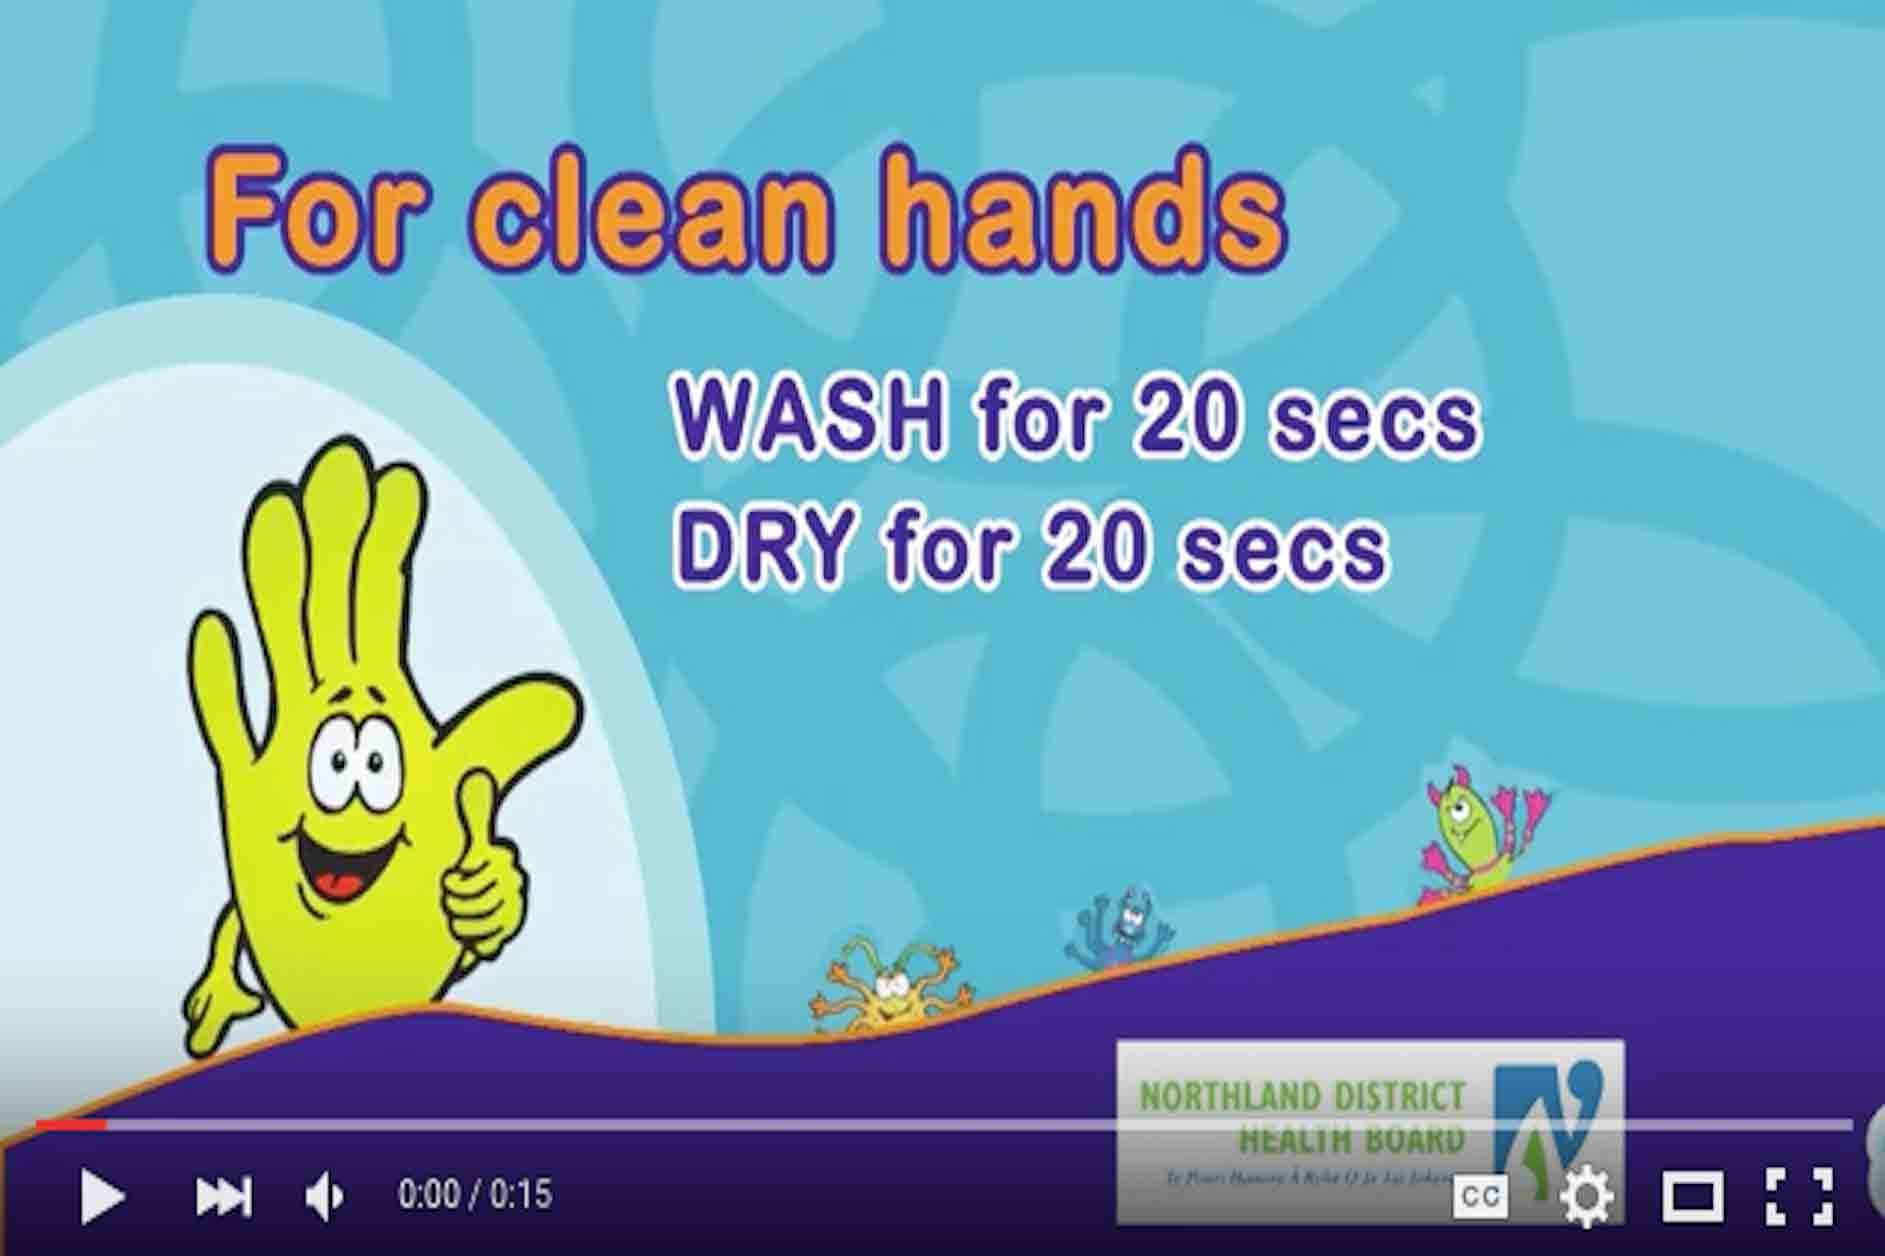 Hand hygiene – why it's important